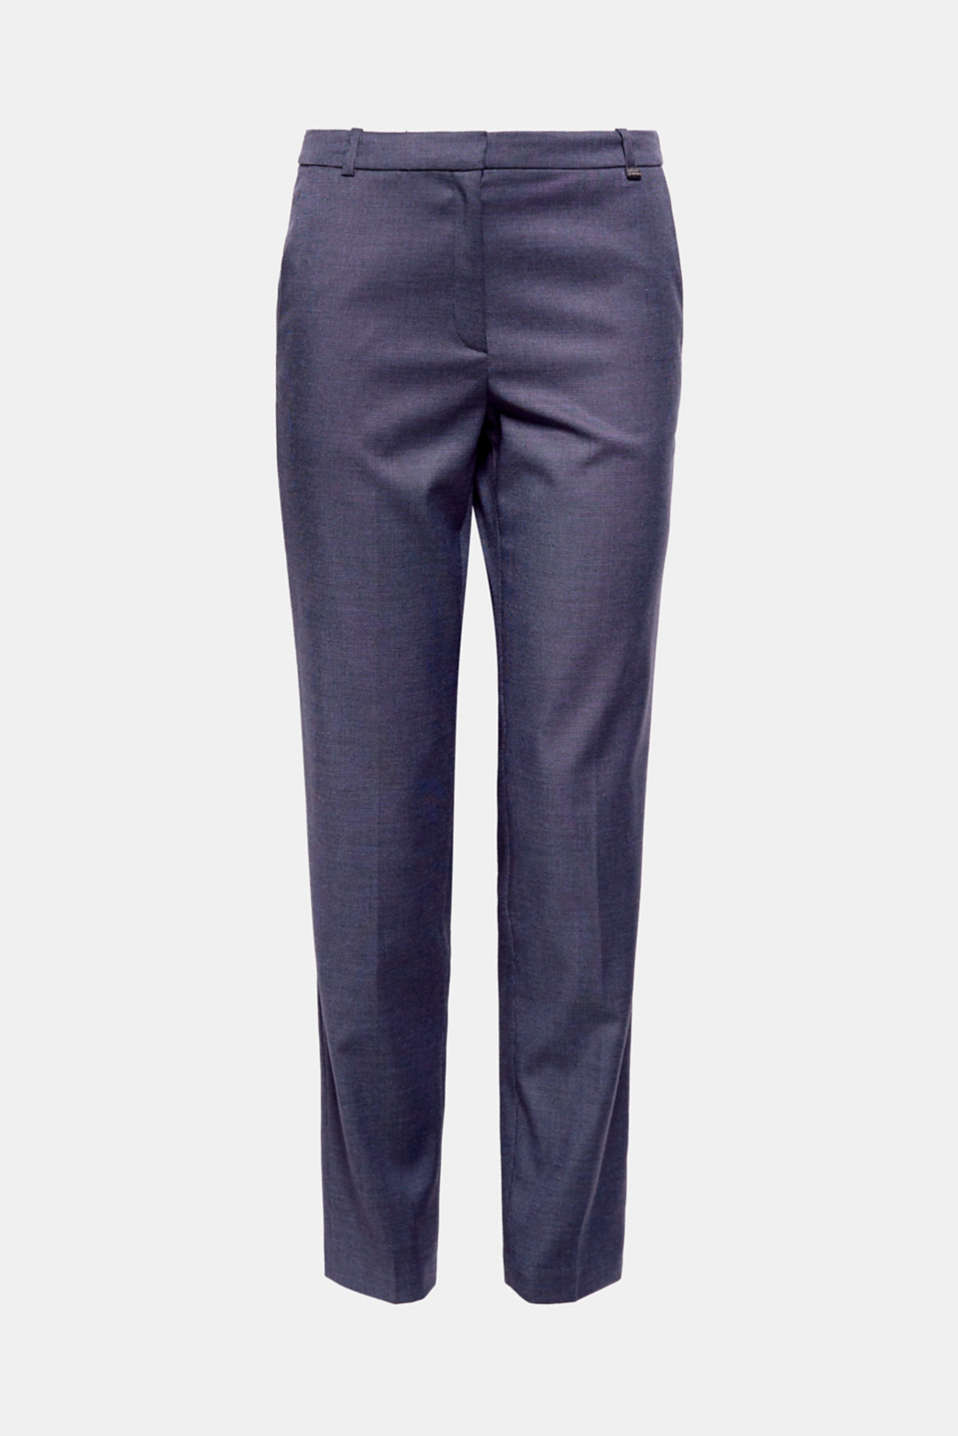 Business style in fine, smooth two-tone fabric: pair these trousers with the matching blazer for a complete outfit!